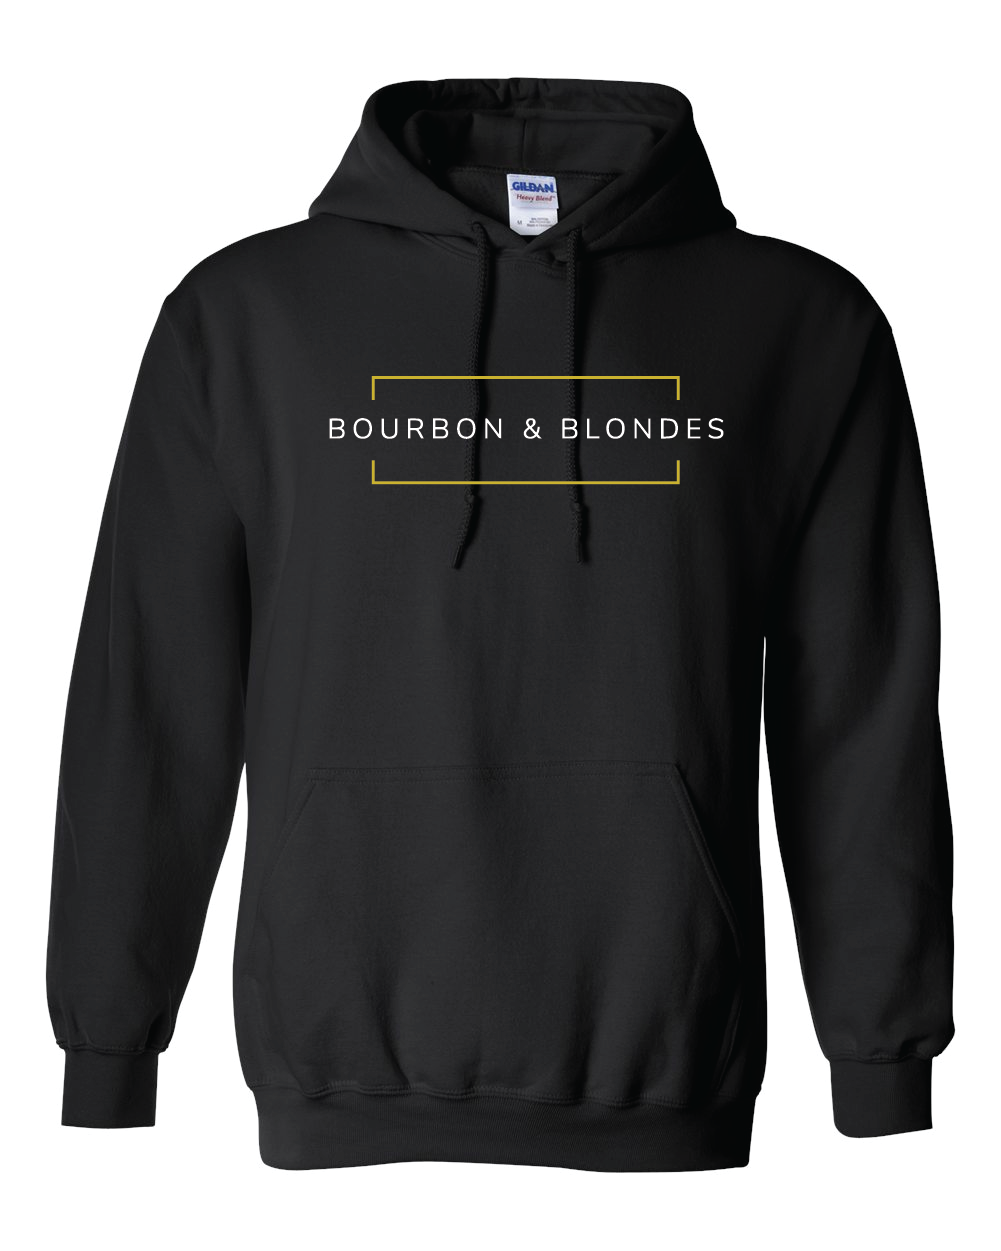 Bourbons & Blondes - Hoody